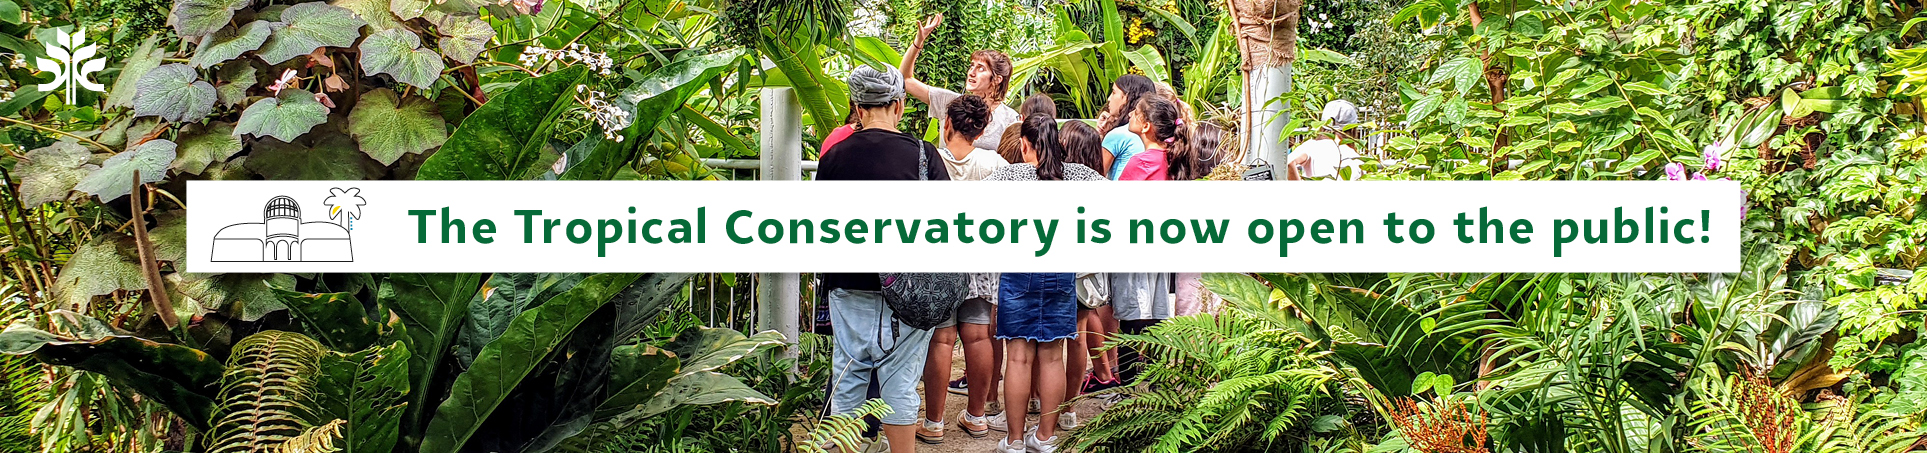 The conservatory is open to the public